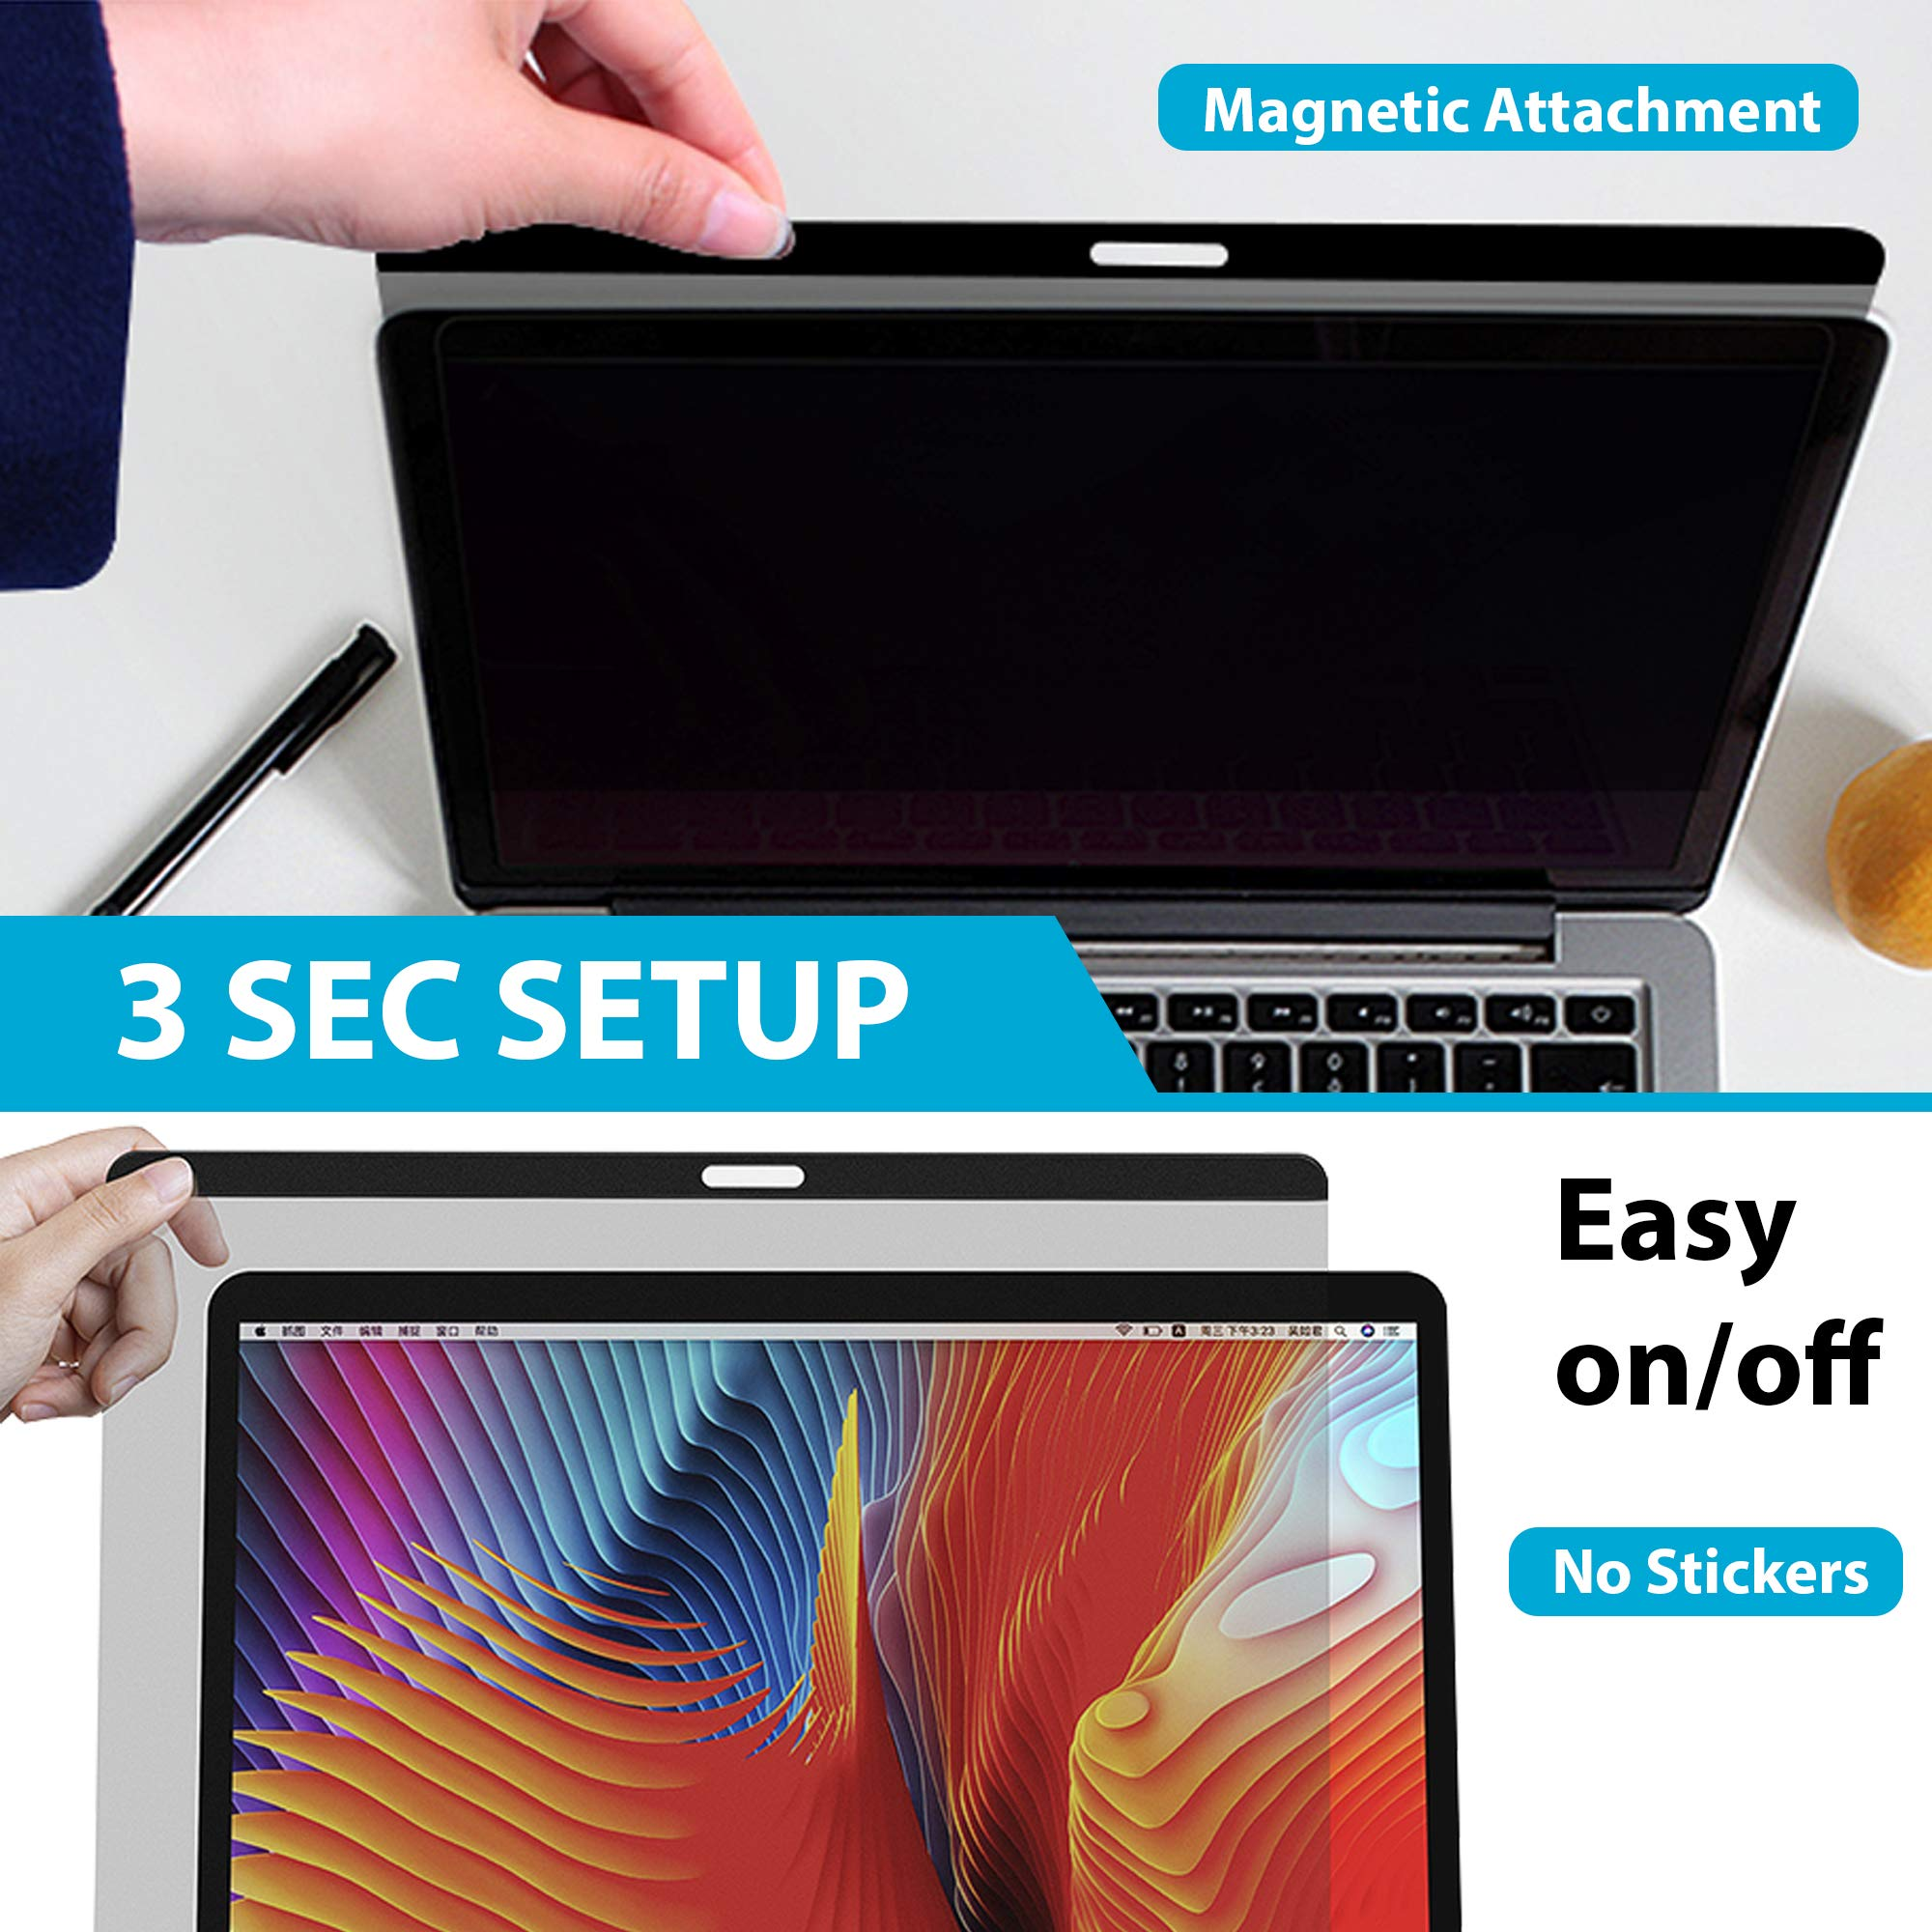 ADVTECH 2nd Gen Magnetic Privacy Screen Filter Compatible for Latest MacBook Pro 13'' Touch Bar (Late 2016) and MacAir (2018) No Stickers Required [Anti-UV Rays] Anti-Glare [Screen Protection] No Leak by ADVTECH (Image #5)